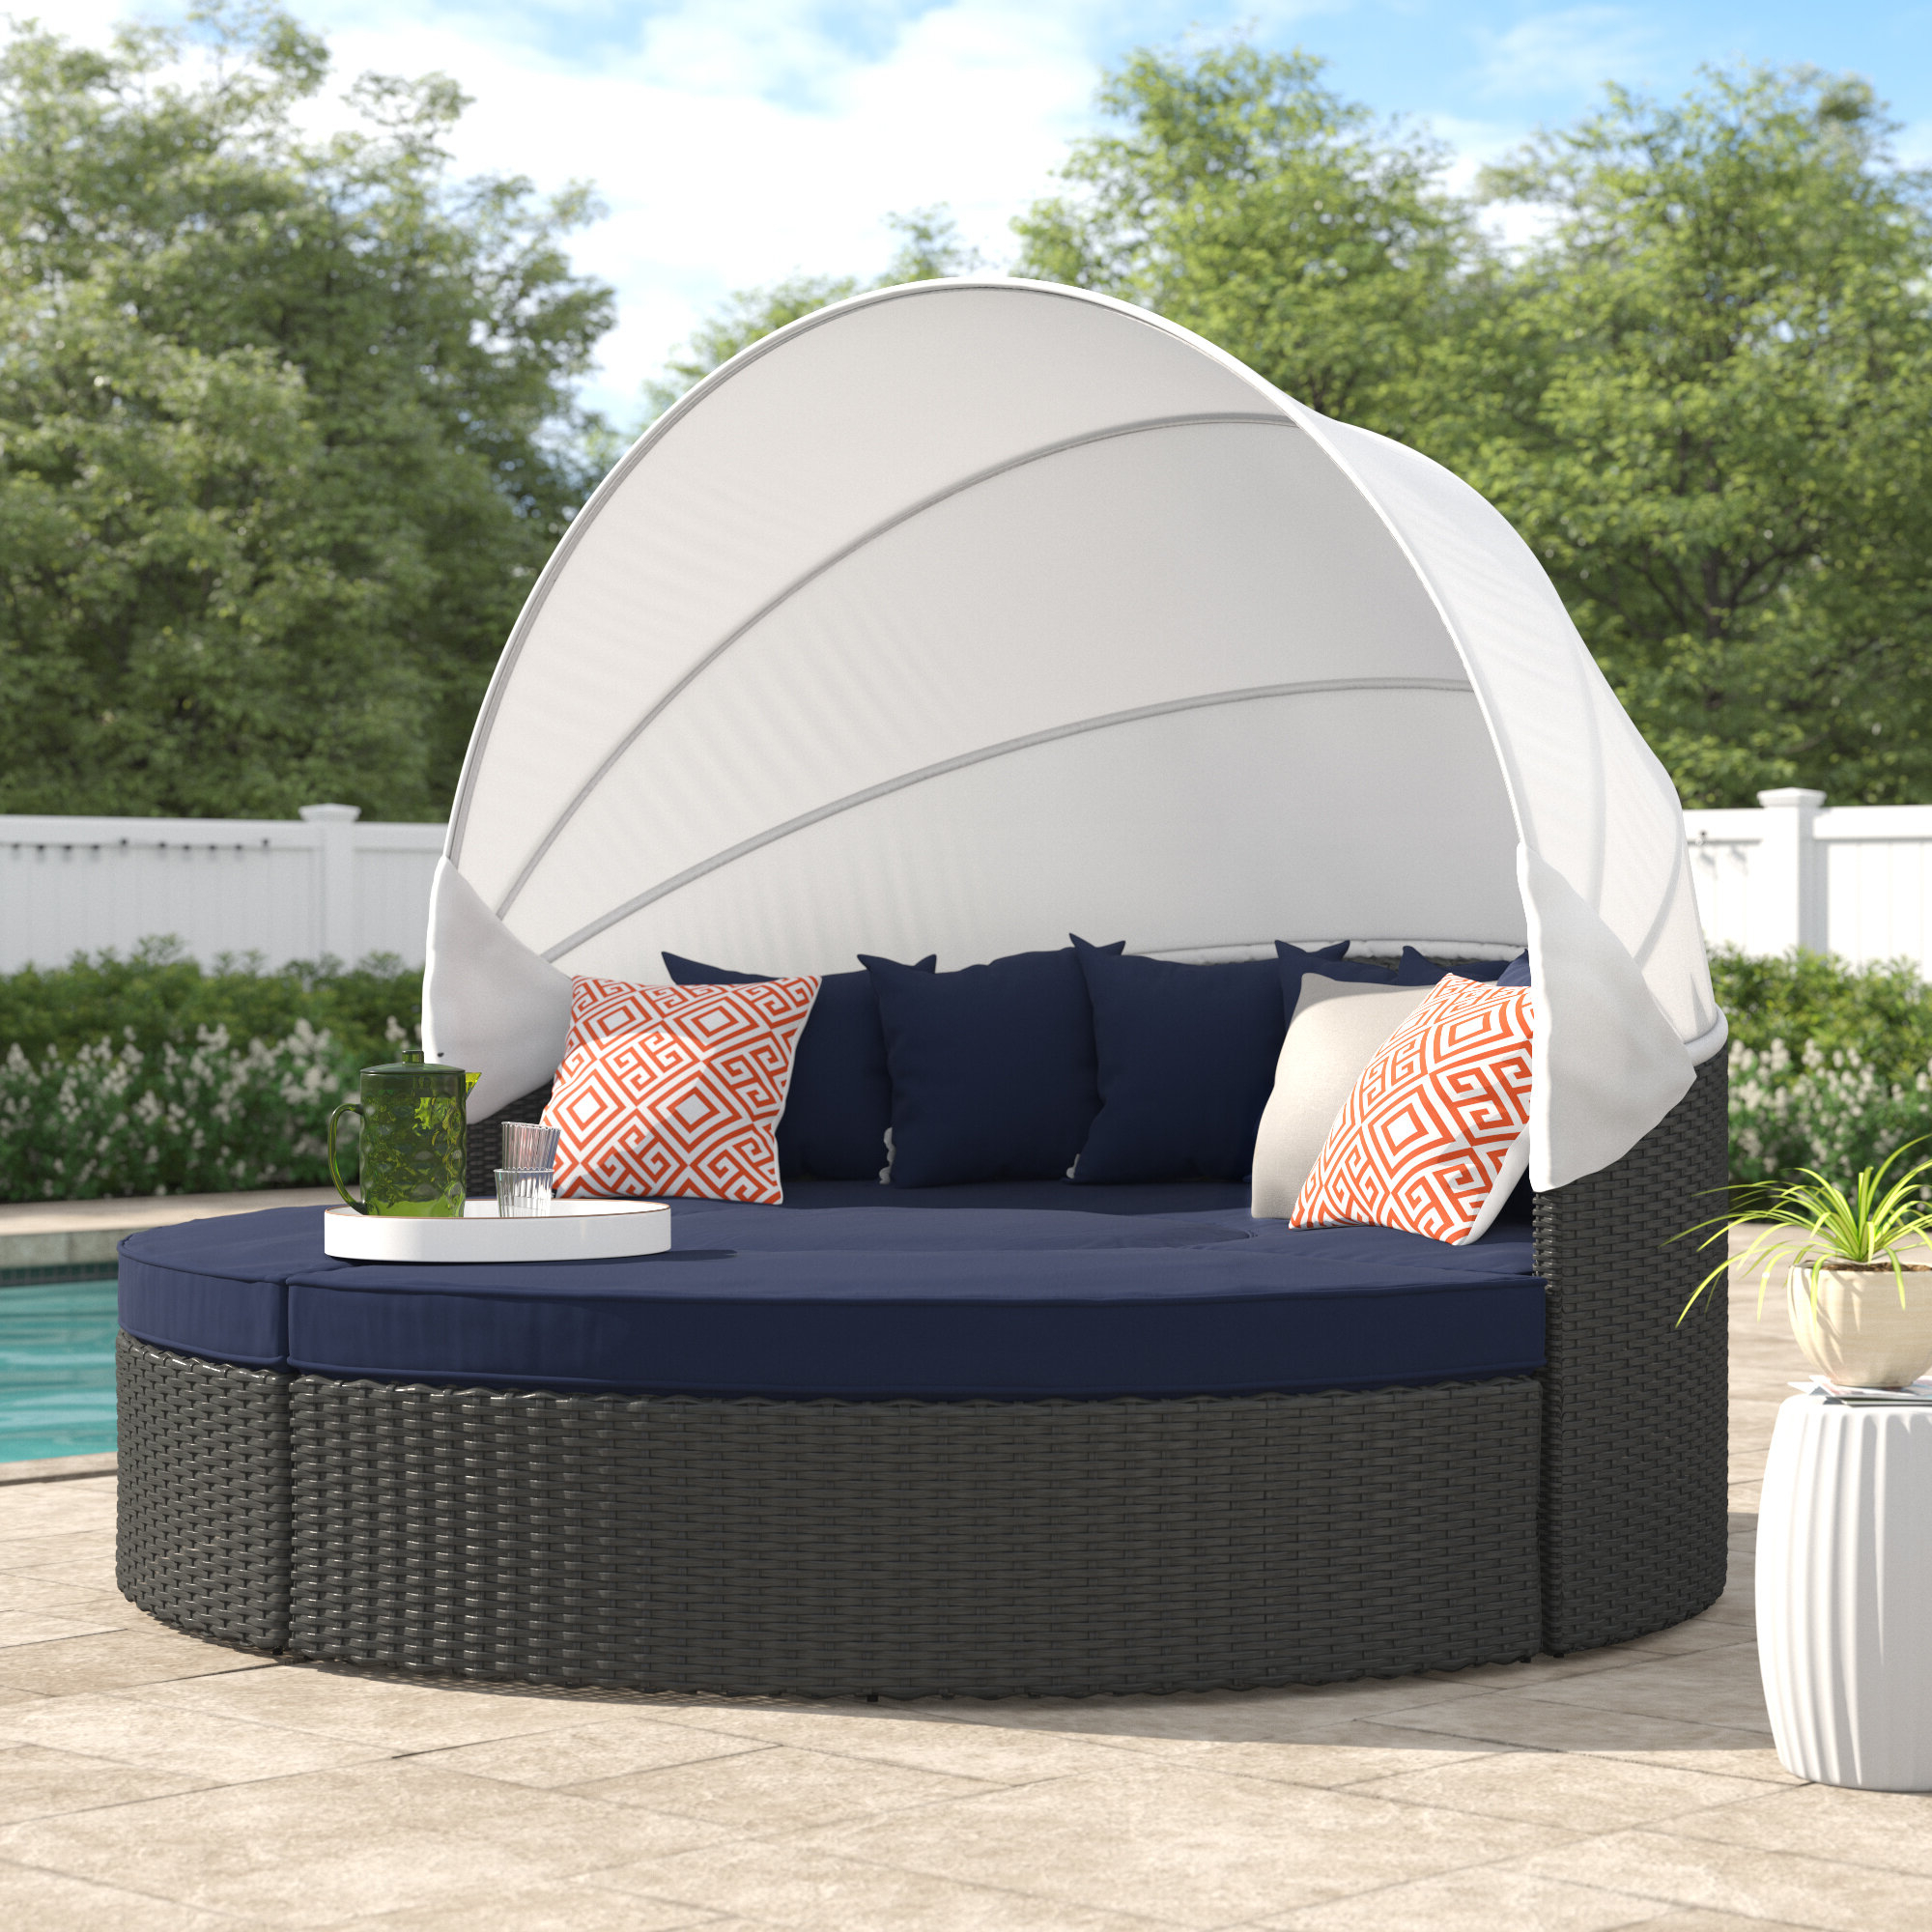 Most Popular Harlow Patio Daybeds With Cushions Intended For Tripp Patio Daybed With Sunbrella Cushions (View 16 of 20)